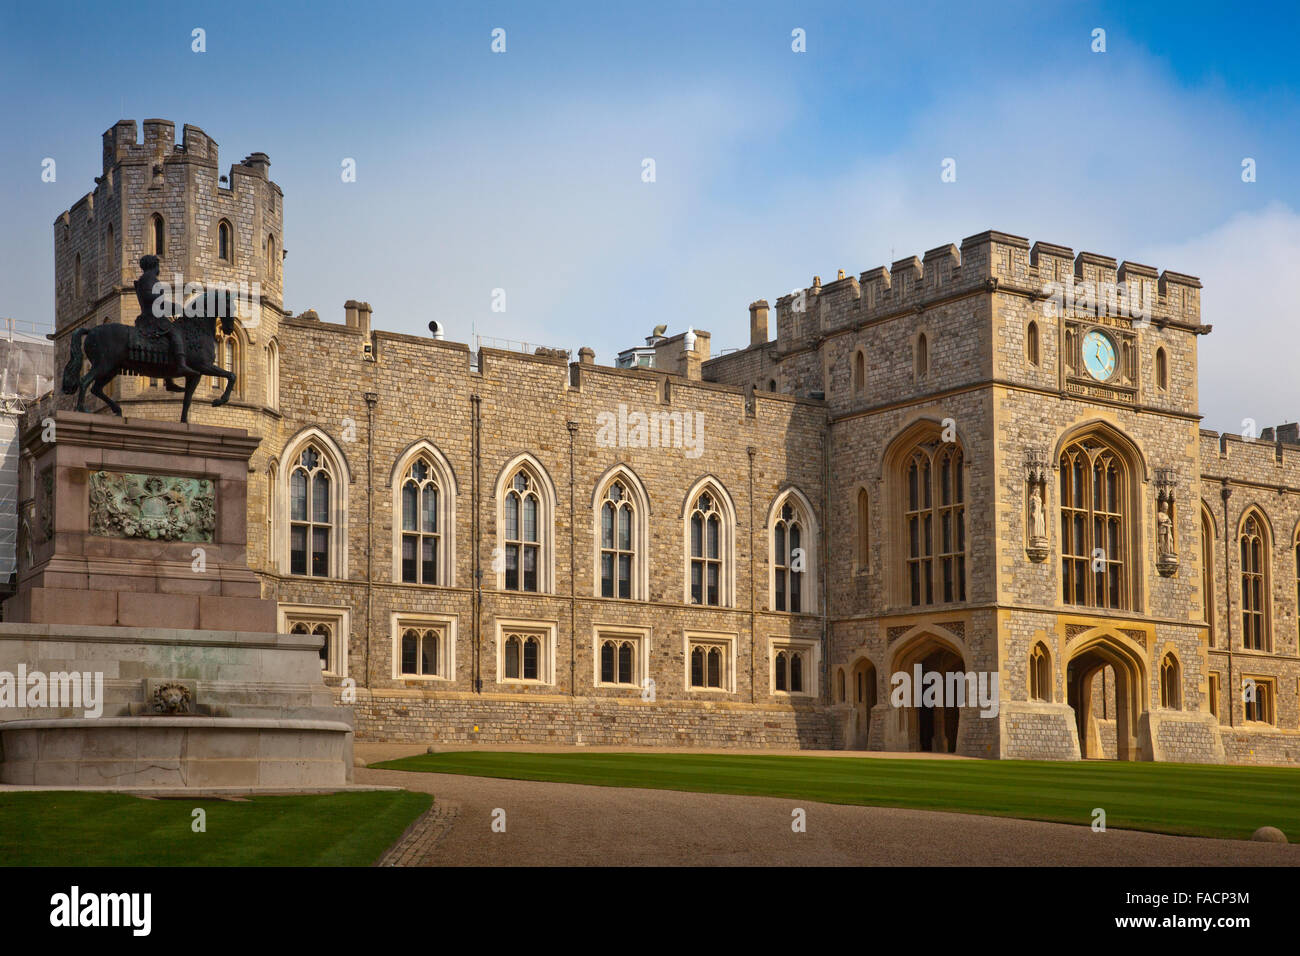 The State Apartments and King Charles II statue at Windsor Castle, Berkshire, England, UK - Stock Image